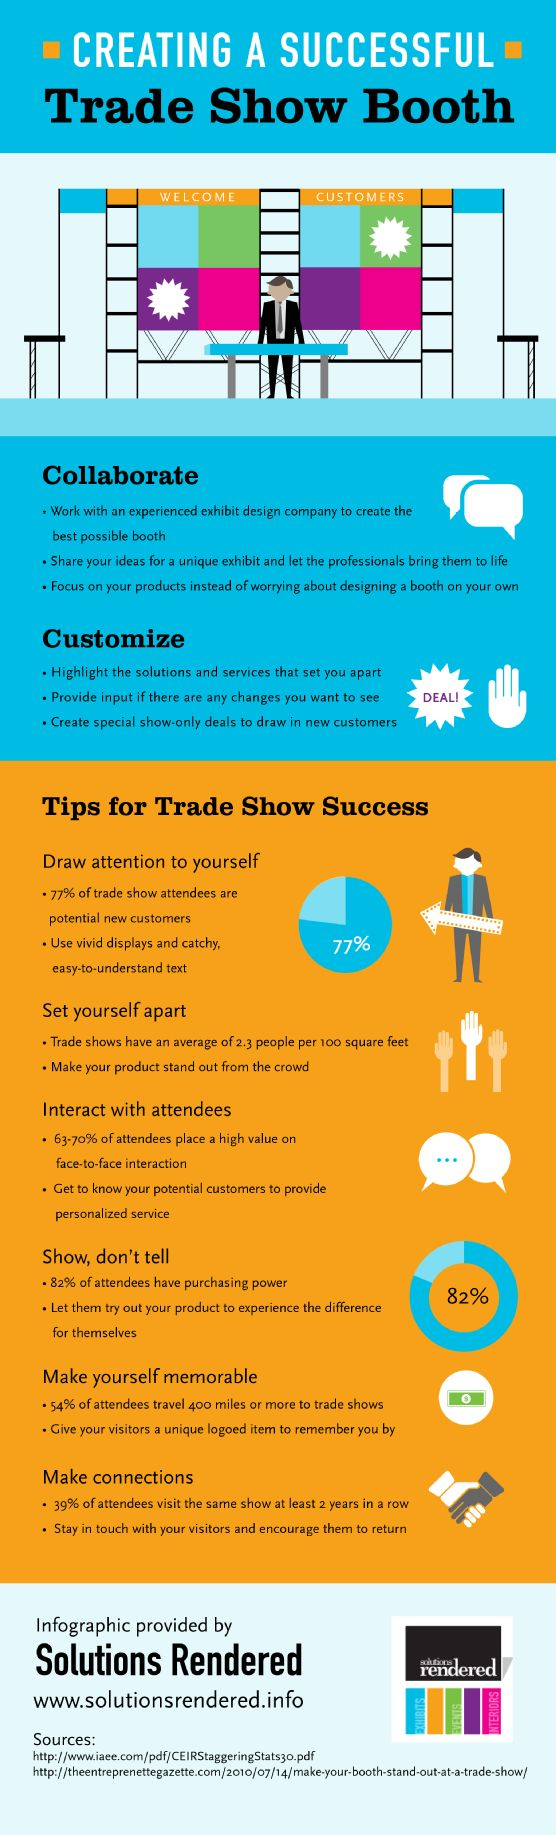 Creating a Successful Trade Show Booth [INFOGRAPHIC]